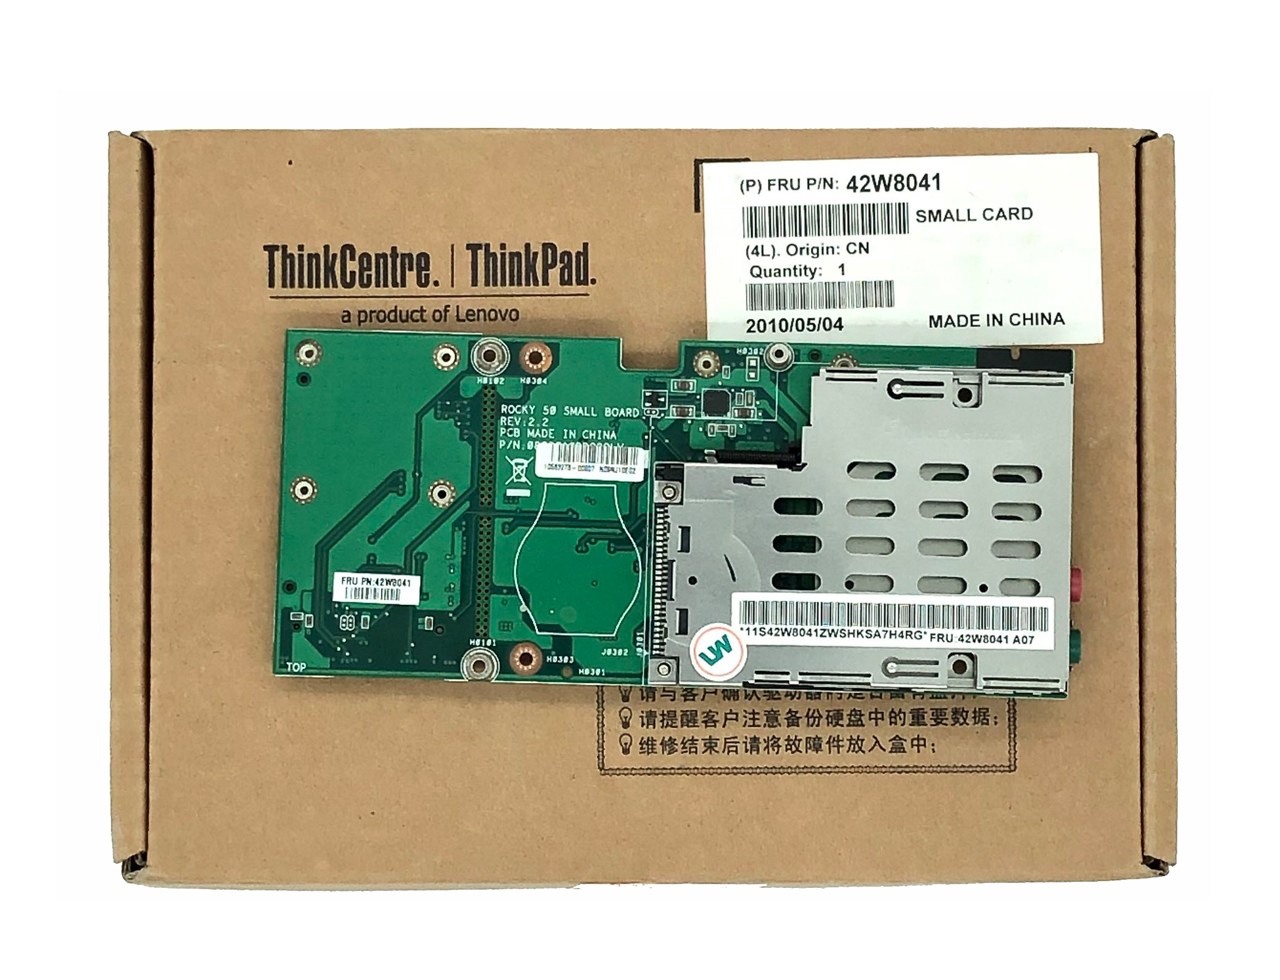 42W8041 IBM 联想 Lenovo ThinkPad sl500 Audio USB PCMCIA Card WIFI 网卡 接口小板